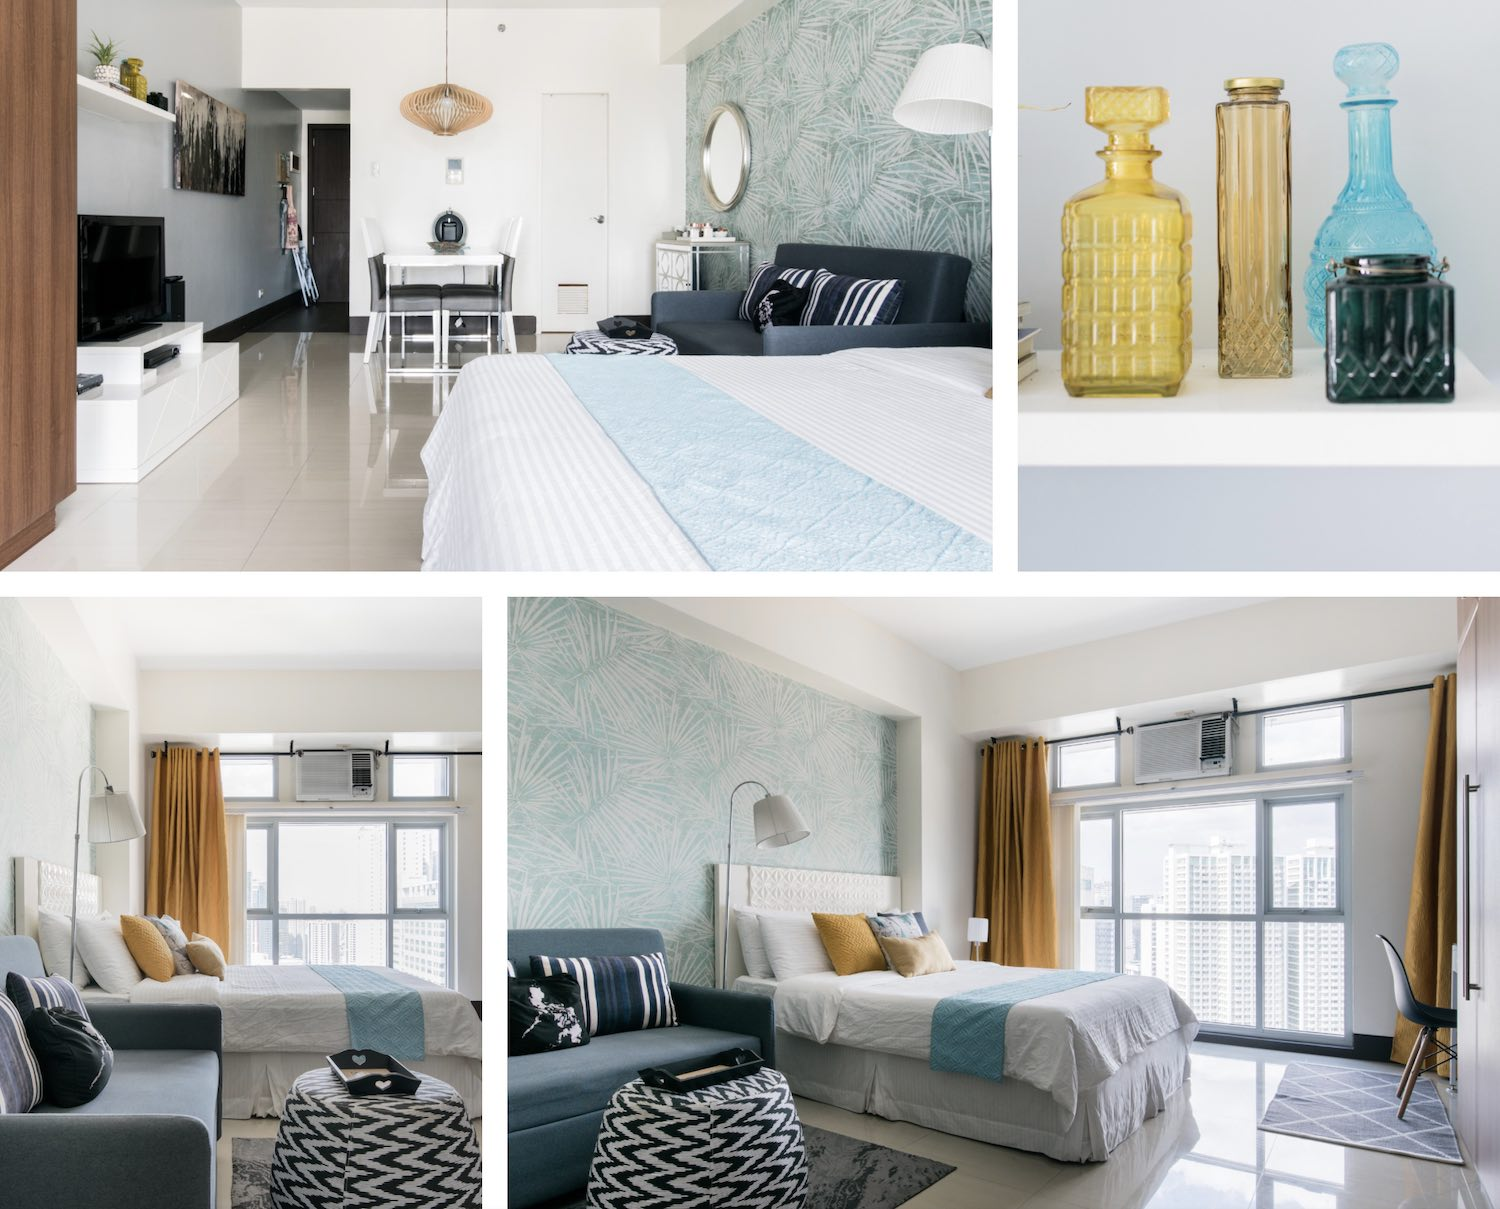 Best Overall Value for Money Airbnb in Manila